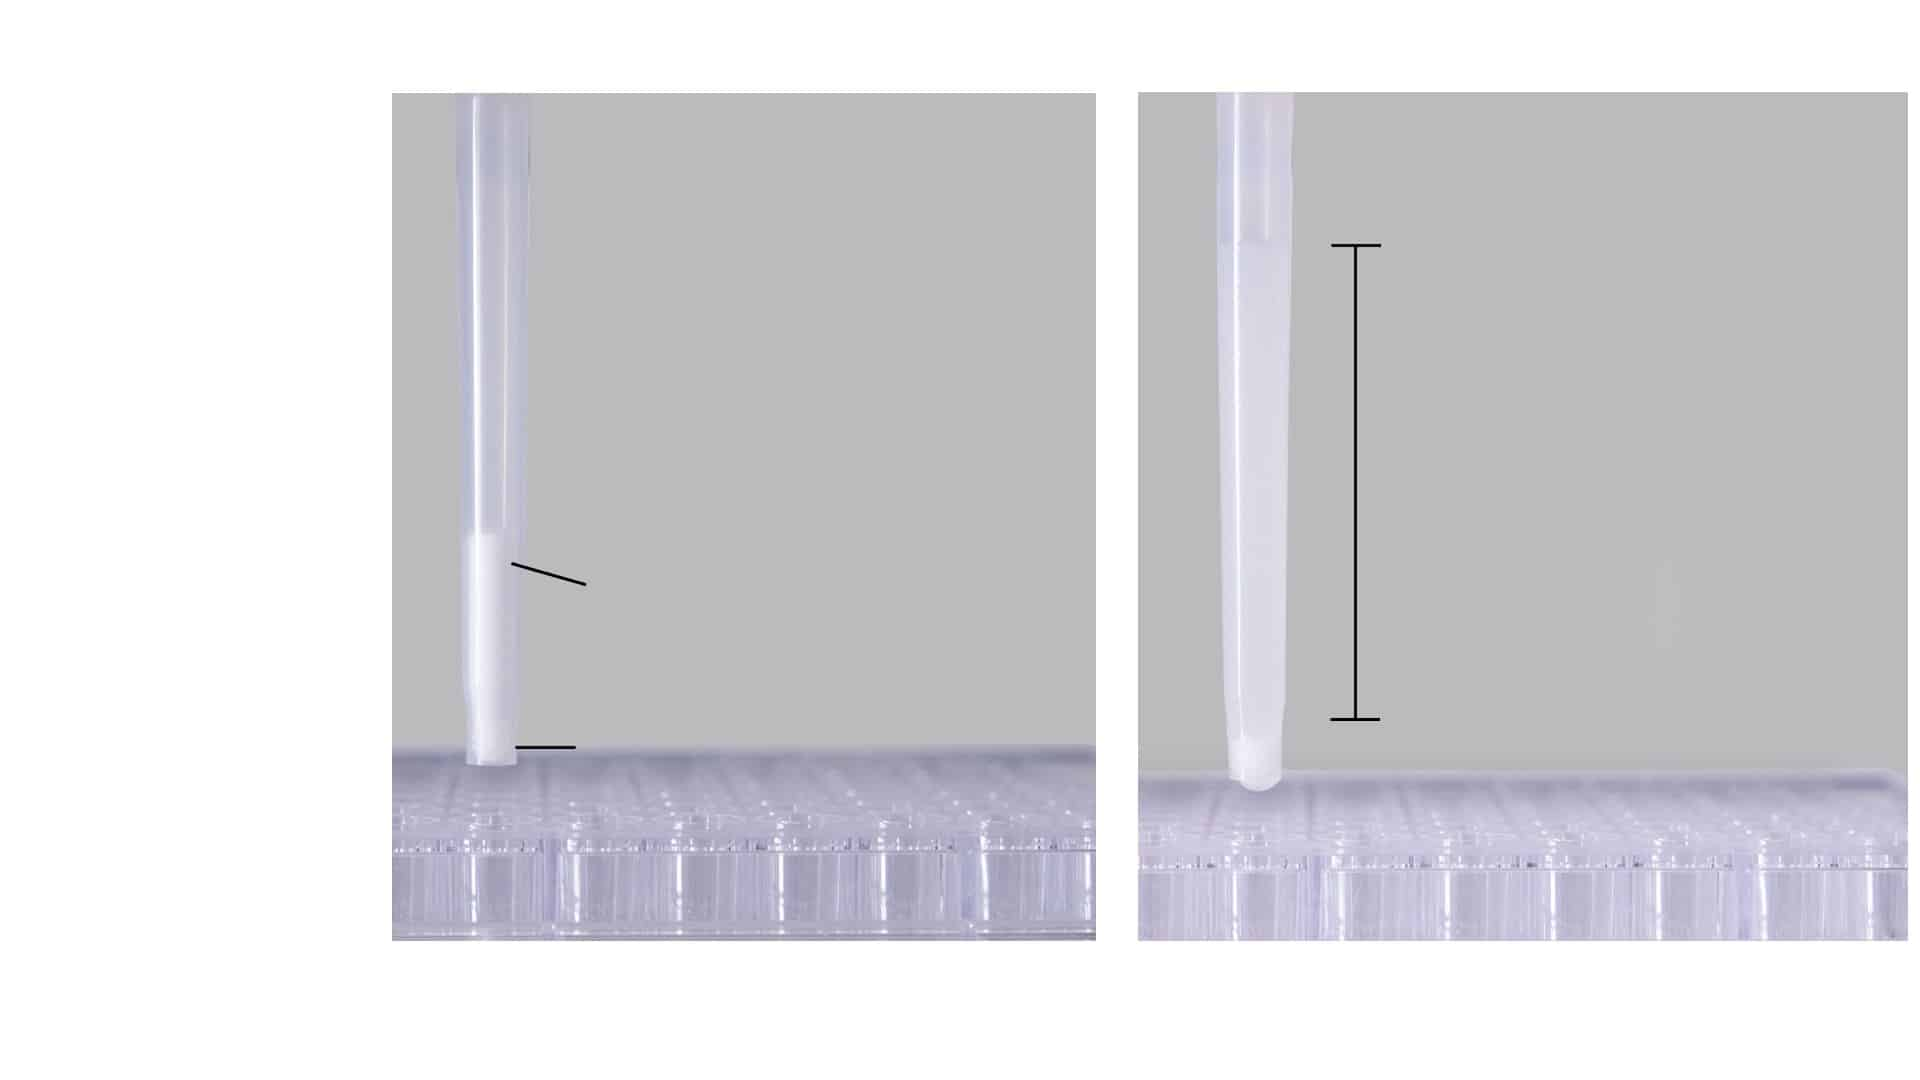 INTip size exclusion chromatography